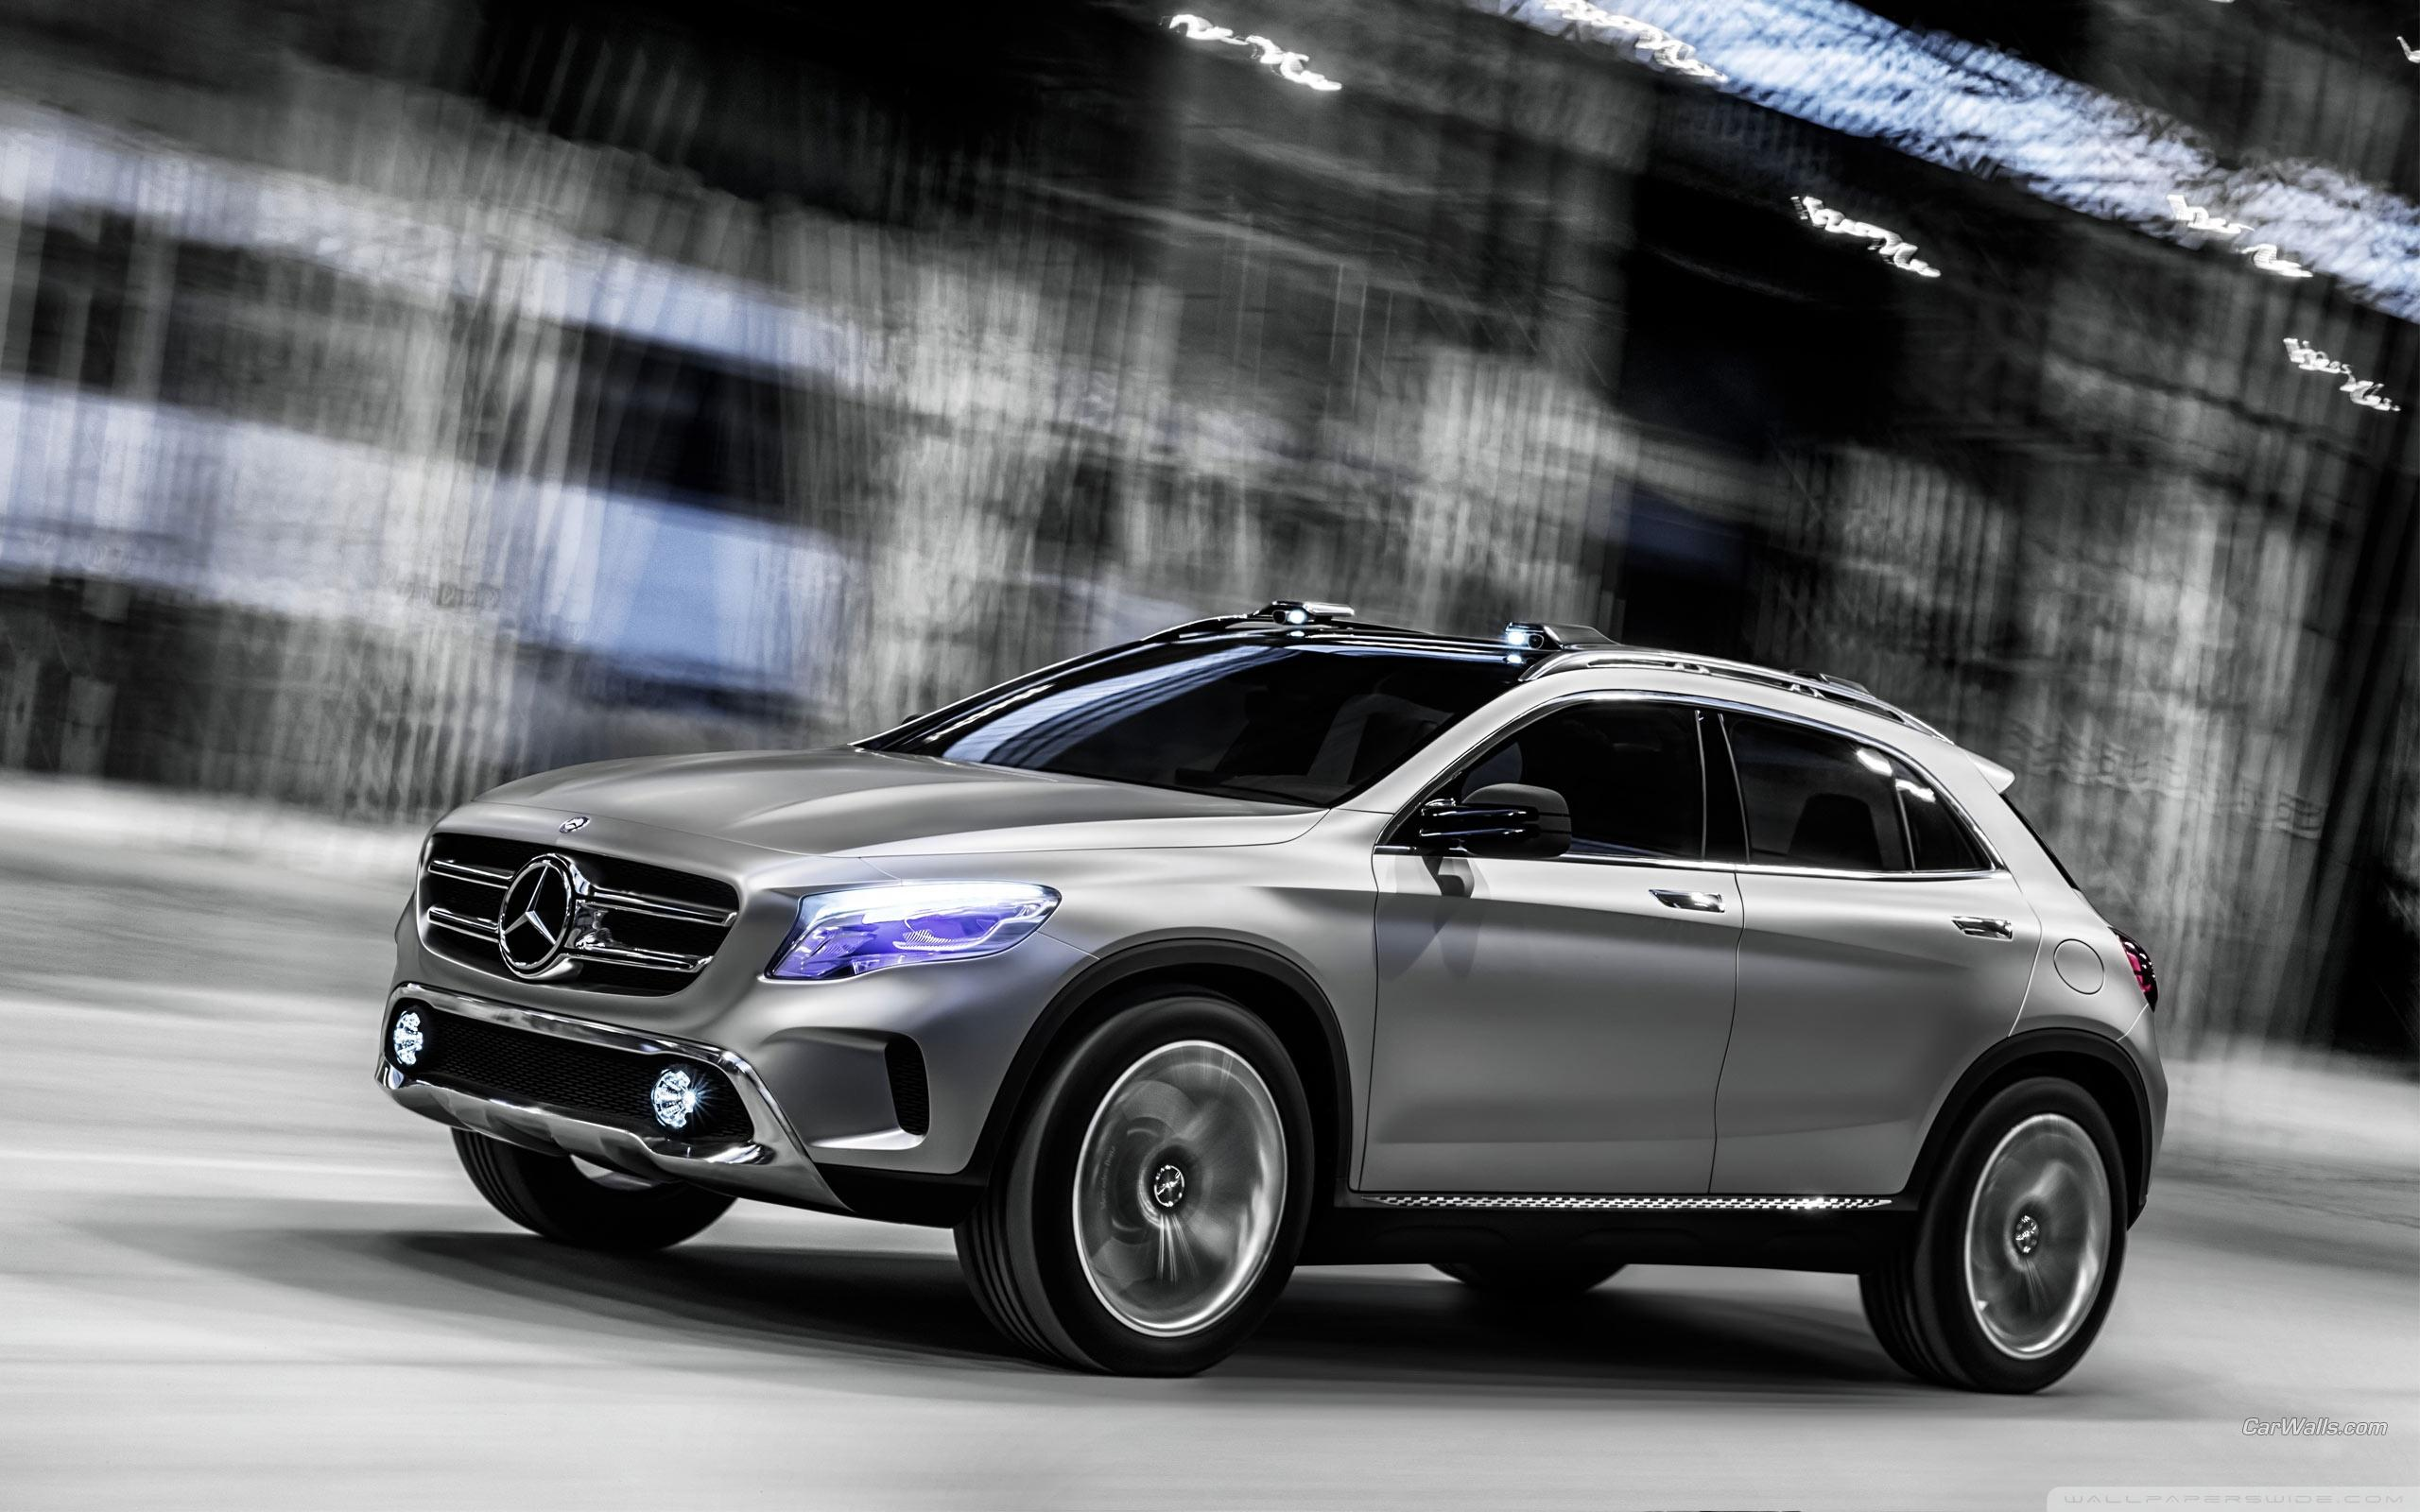 Mercedes Benz GLA Concept ❤ 4K HD Desktop Wallpaper for • Wide ...